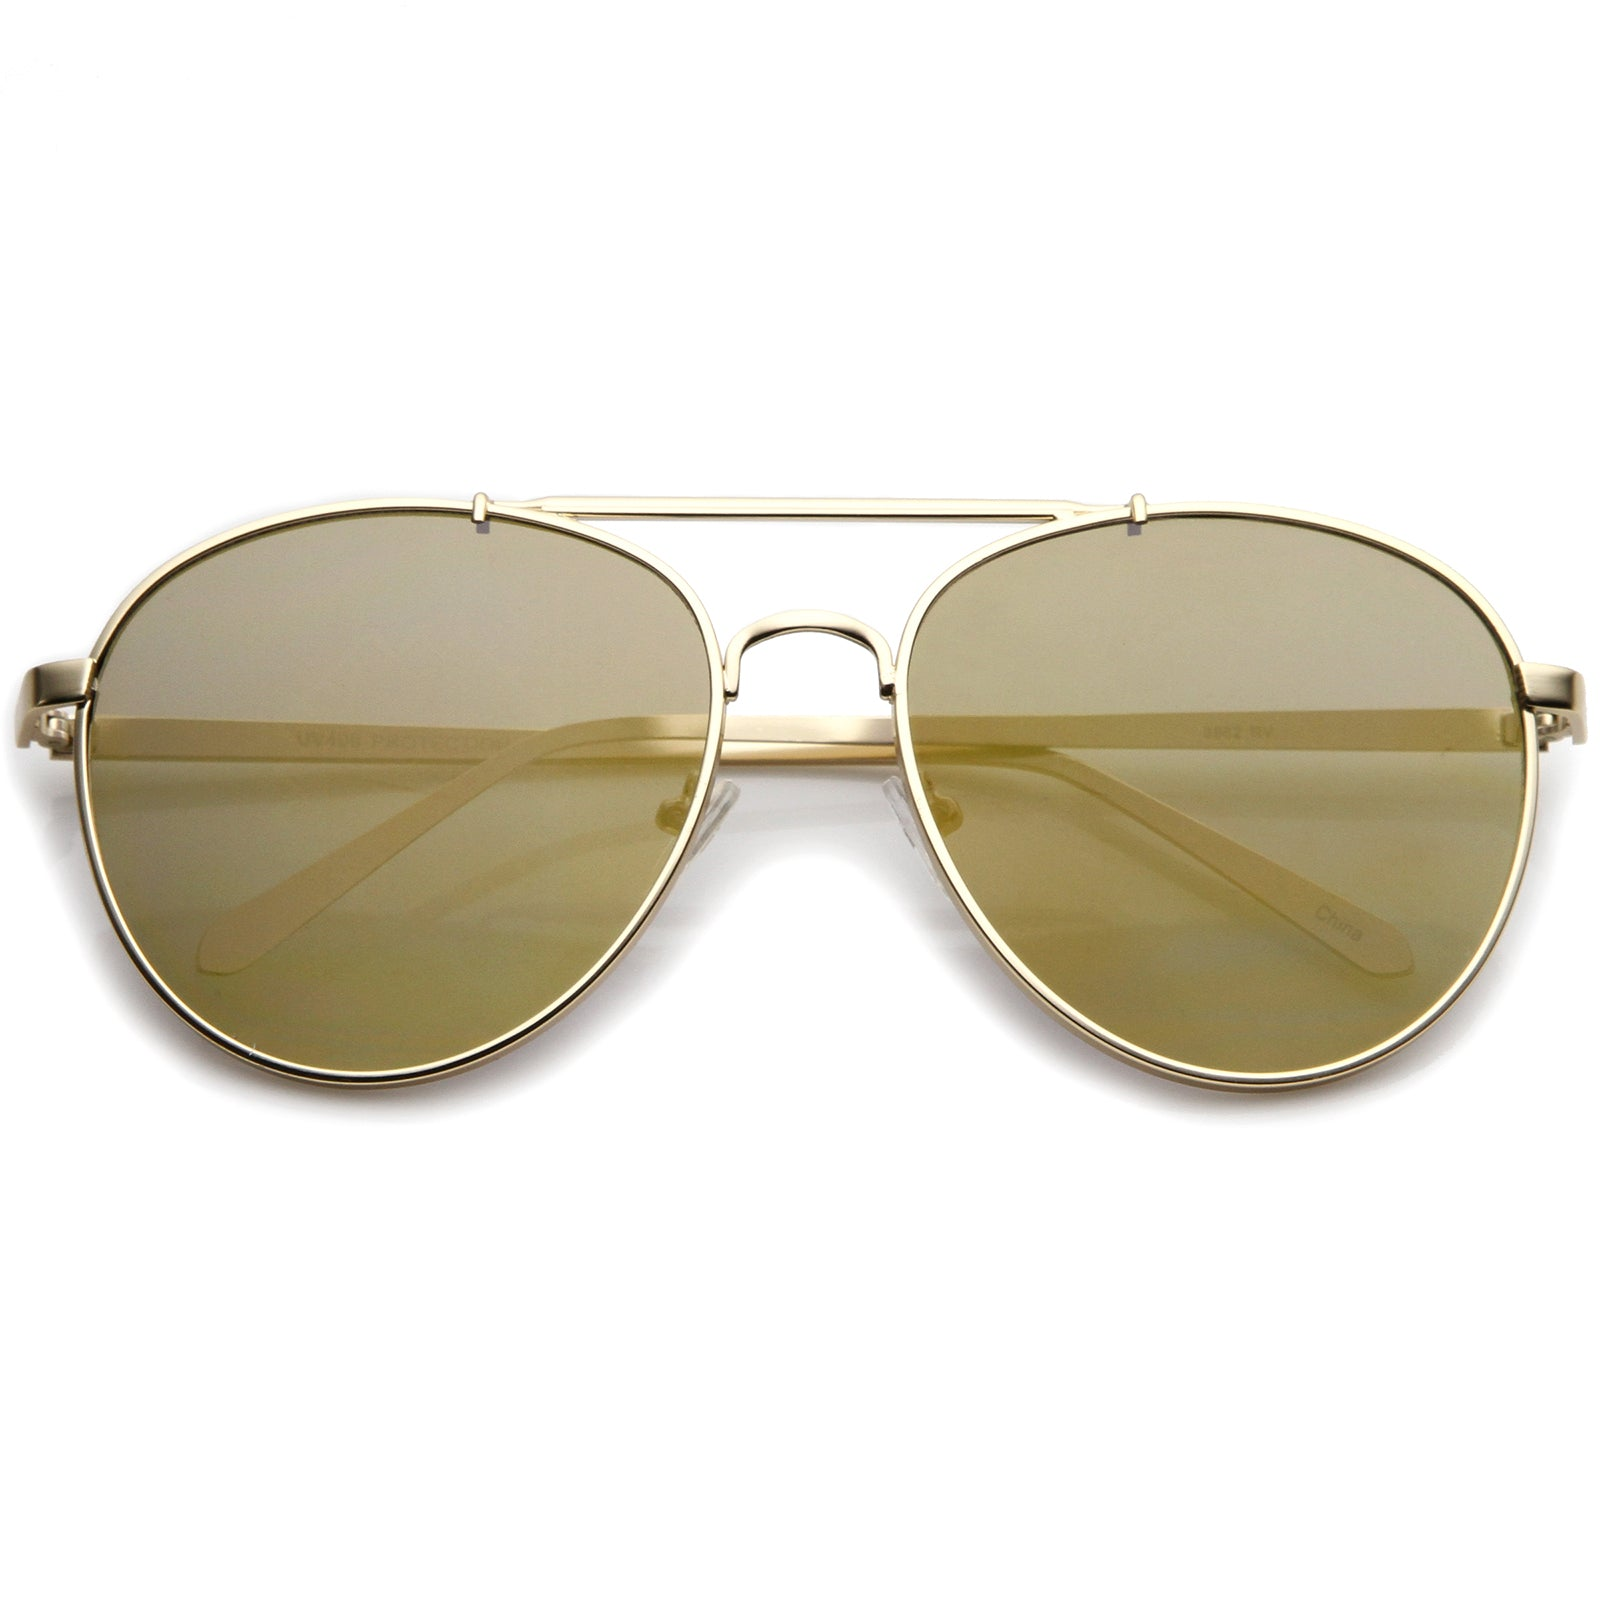 Large Metal Teardrop Double Bridge Mirrored Flat Lens Aviator Sunglasses 60mm - sunglass.la - 21